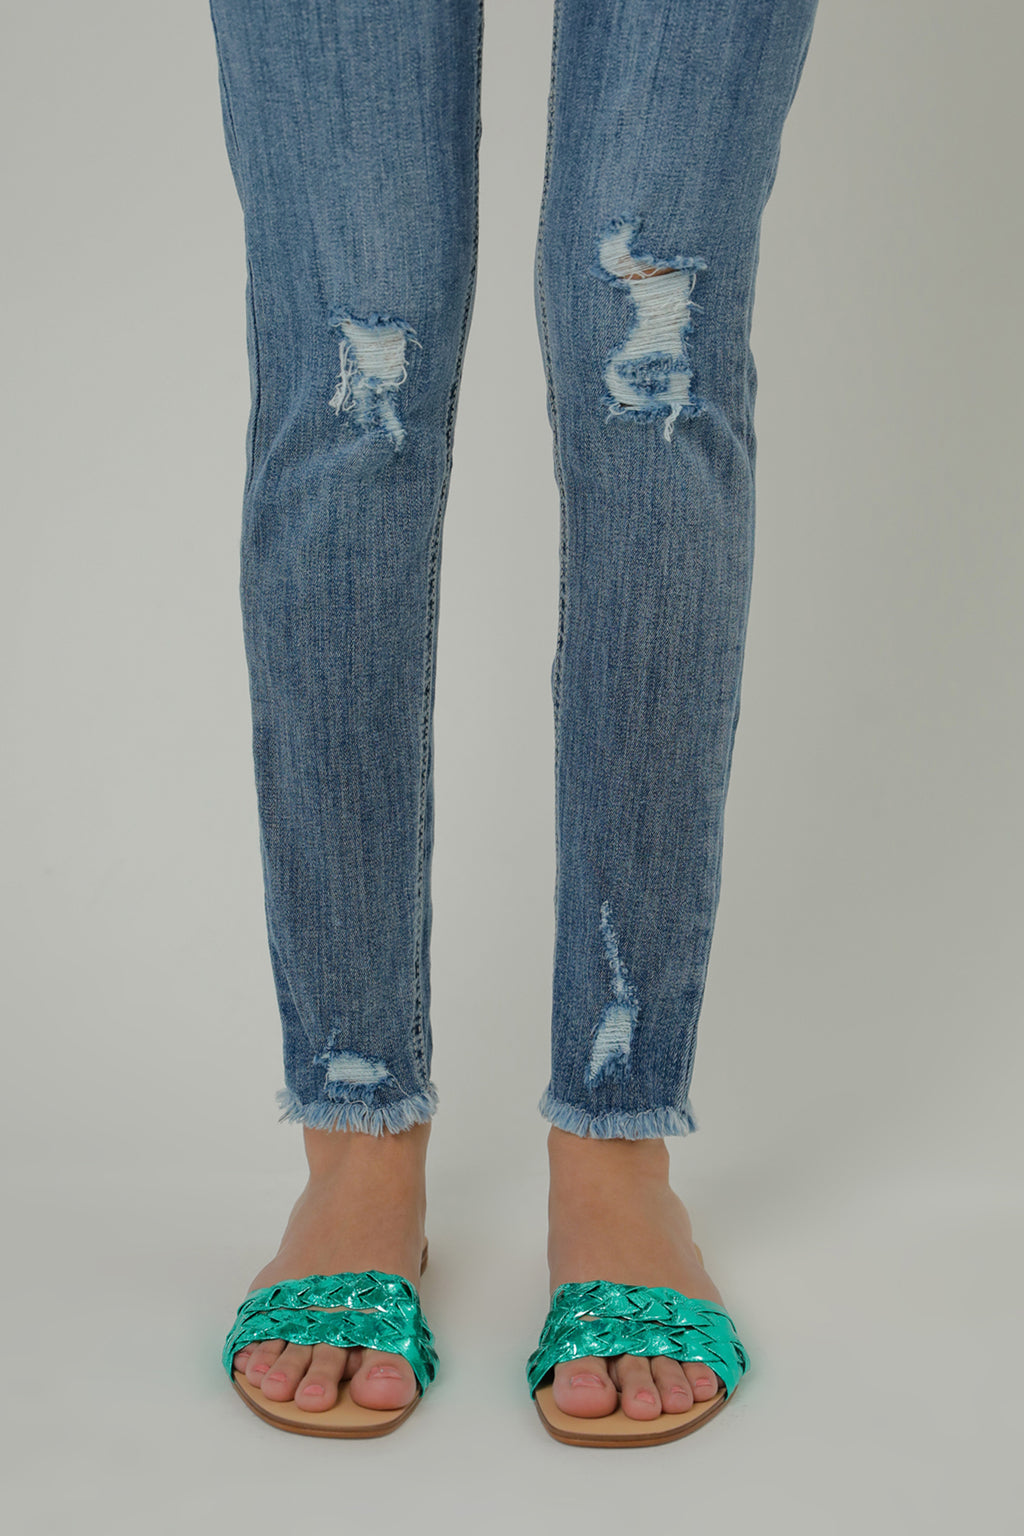 SKINNY JEANS (WBF111665) - Ethnic by Outfitters